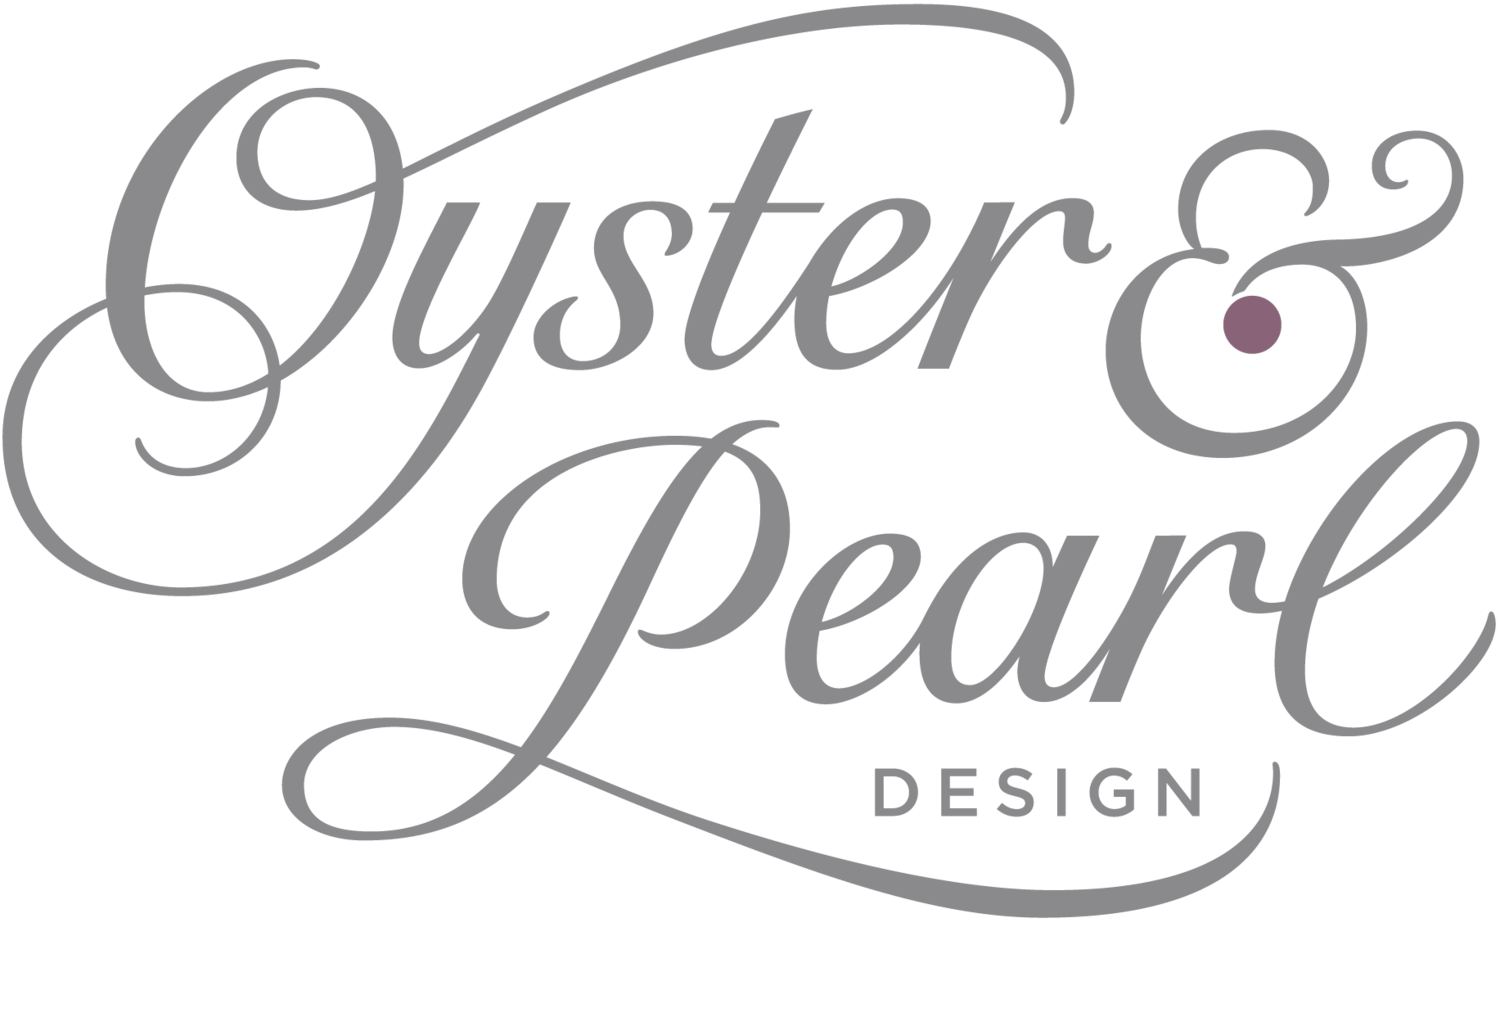 Oyster & Pearl Design - Bespoke Wedding Stationery & Design Studio